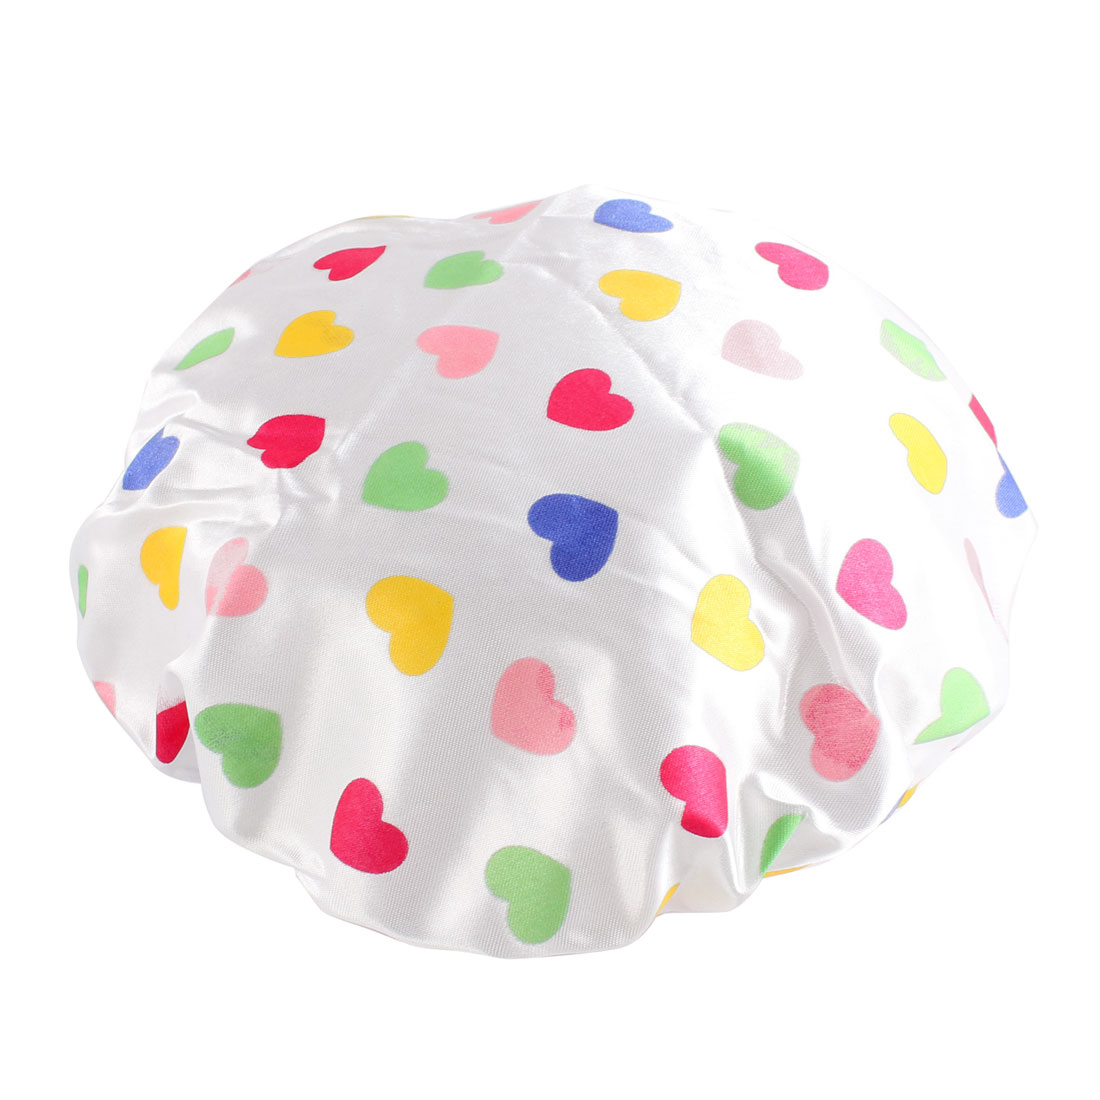 Lady Nylon Multicolor Heart Print Water Resistance Bathing Hat Shower Cap White